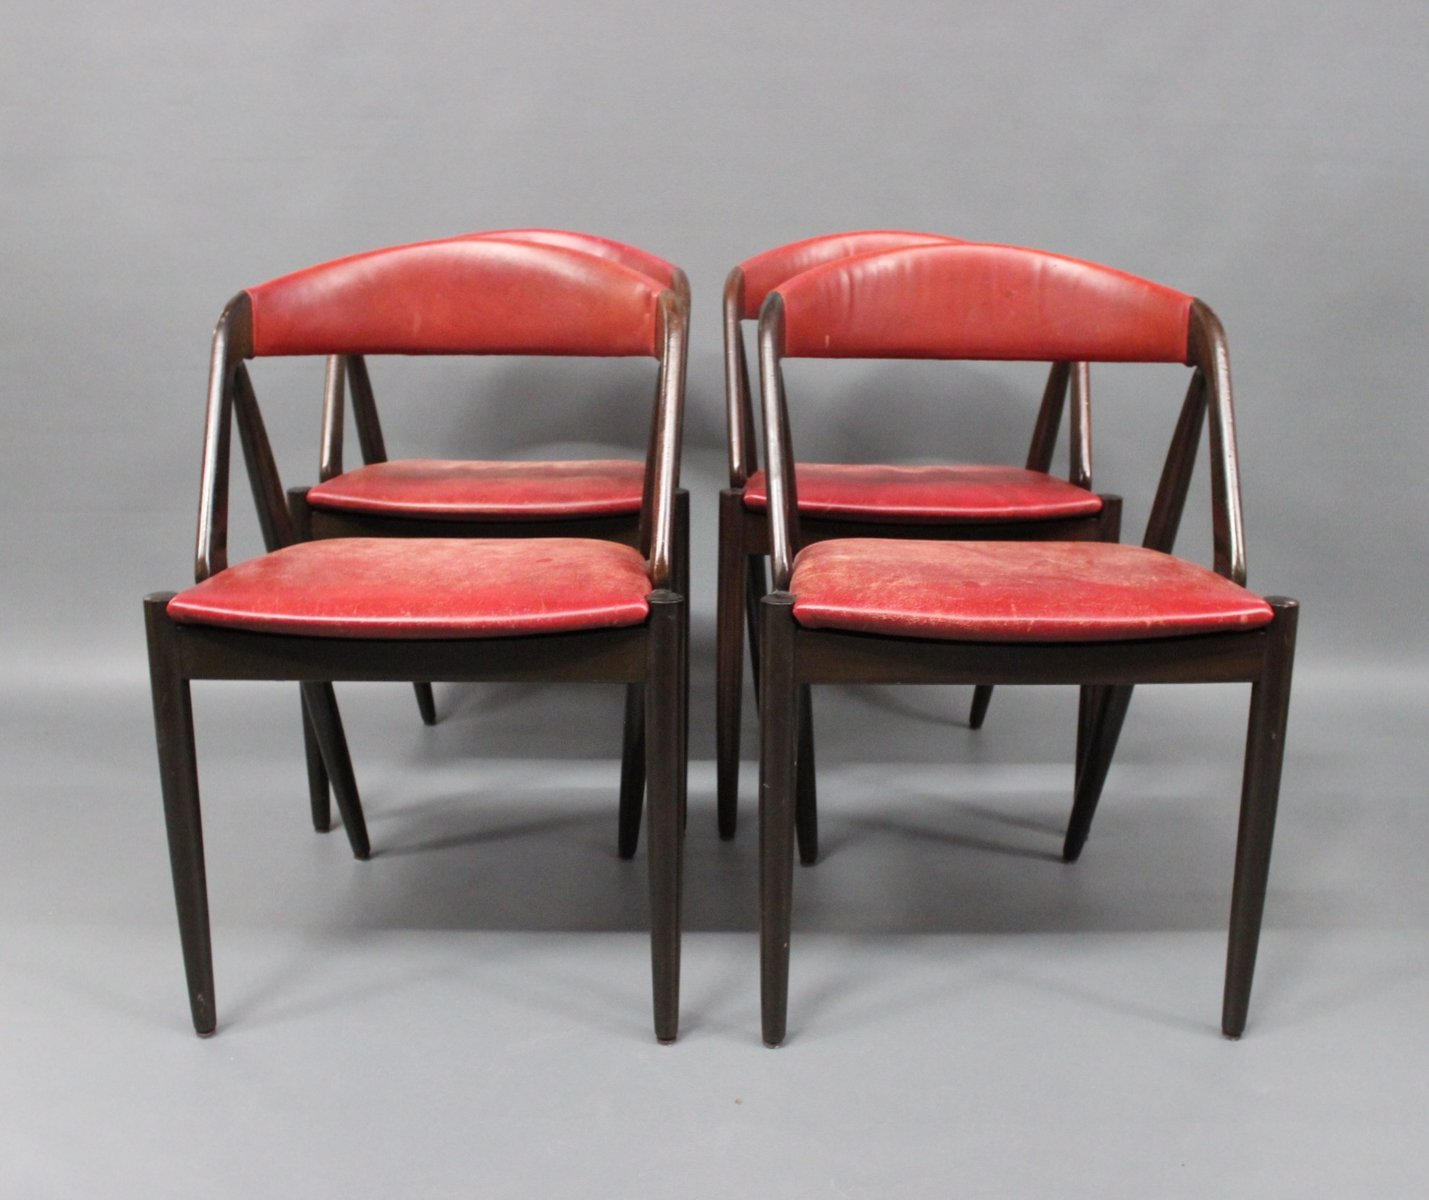 4 Dining Room Chairs For Sale: Vintage Model 31 Dining Room Chairs By Kai Kristiansen For